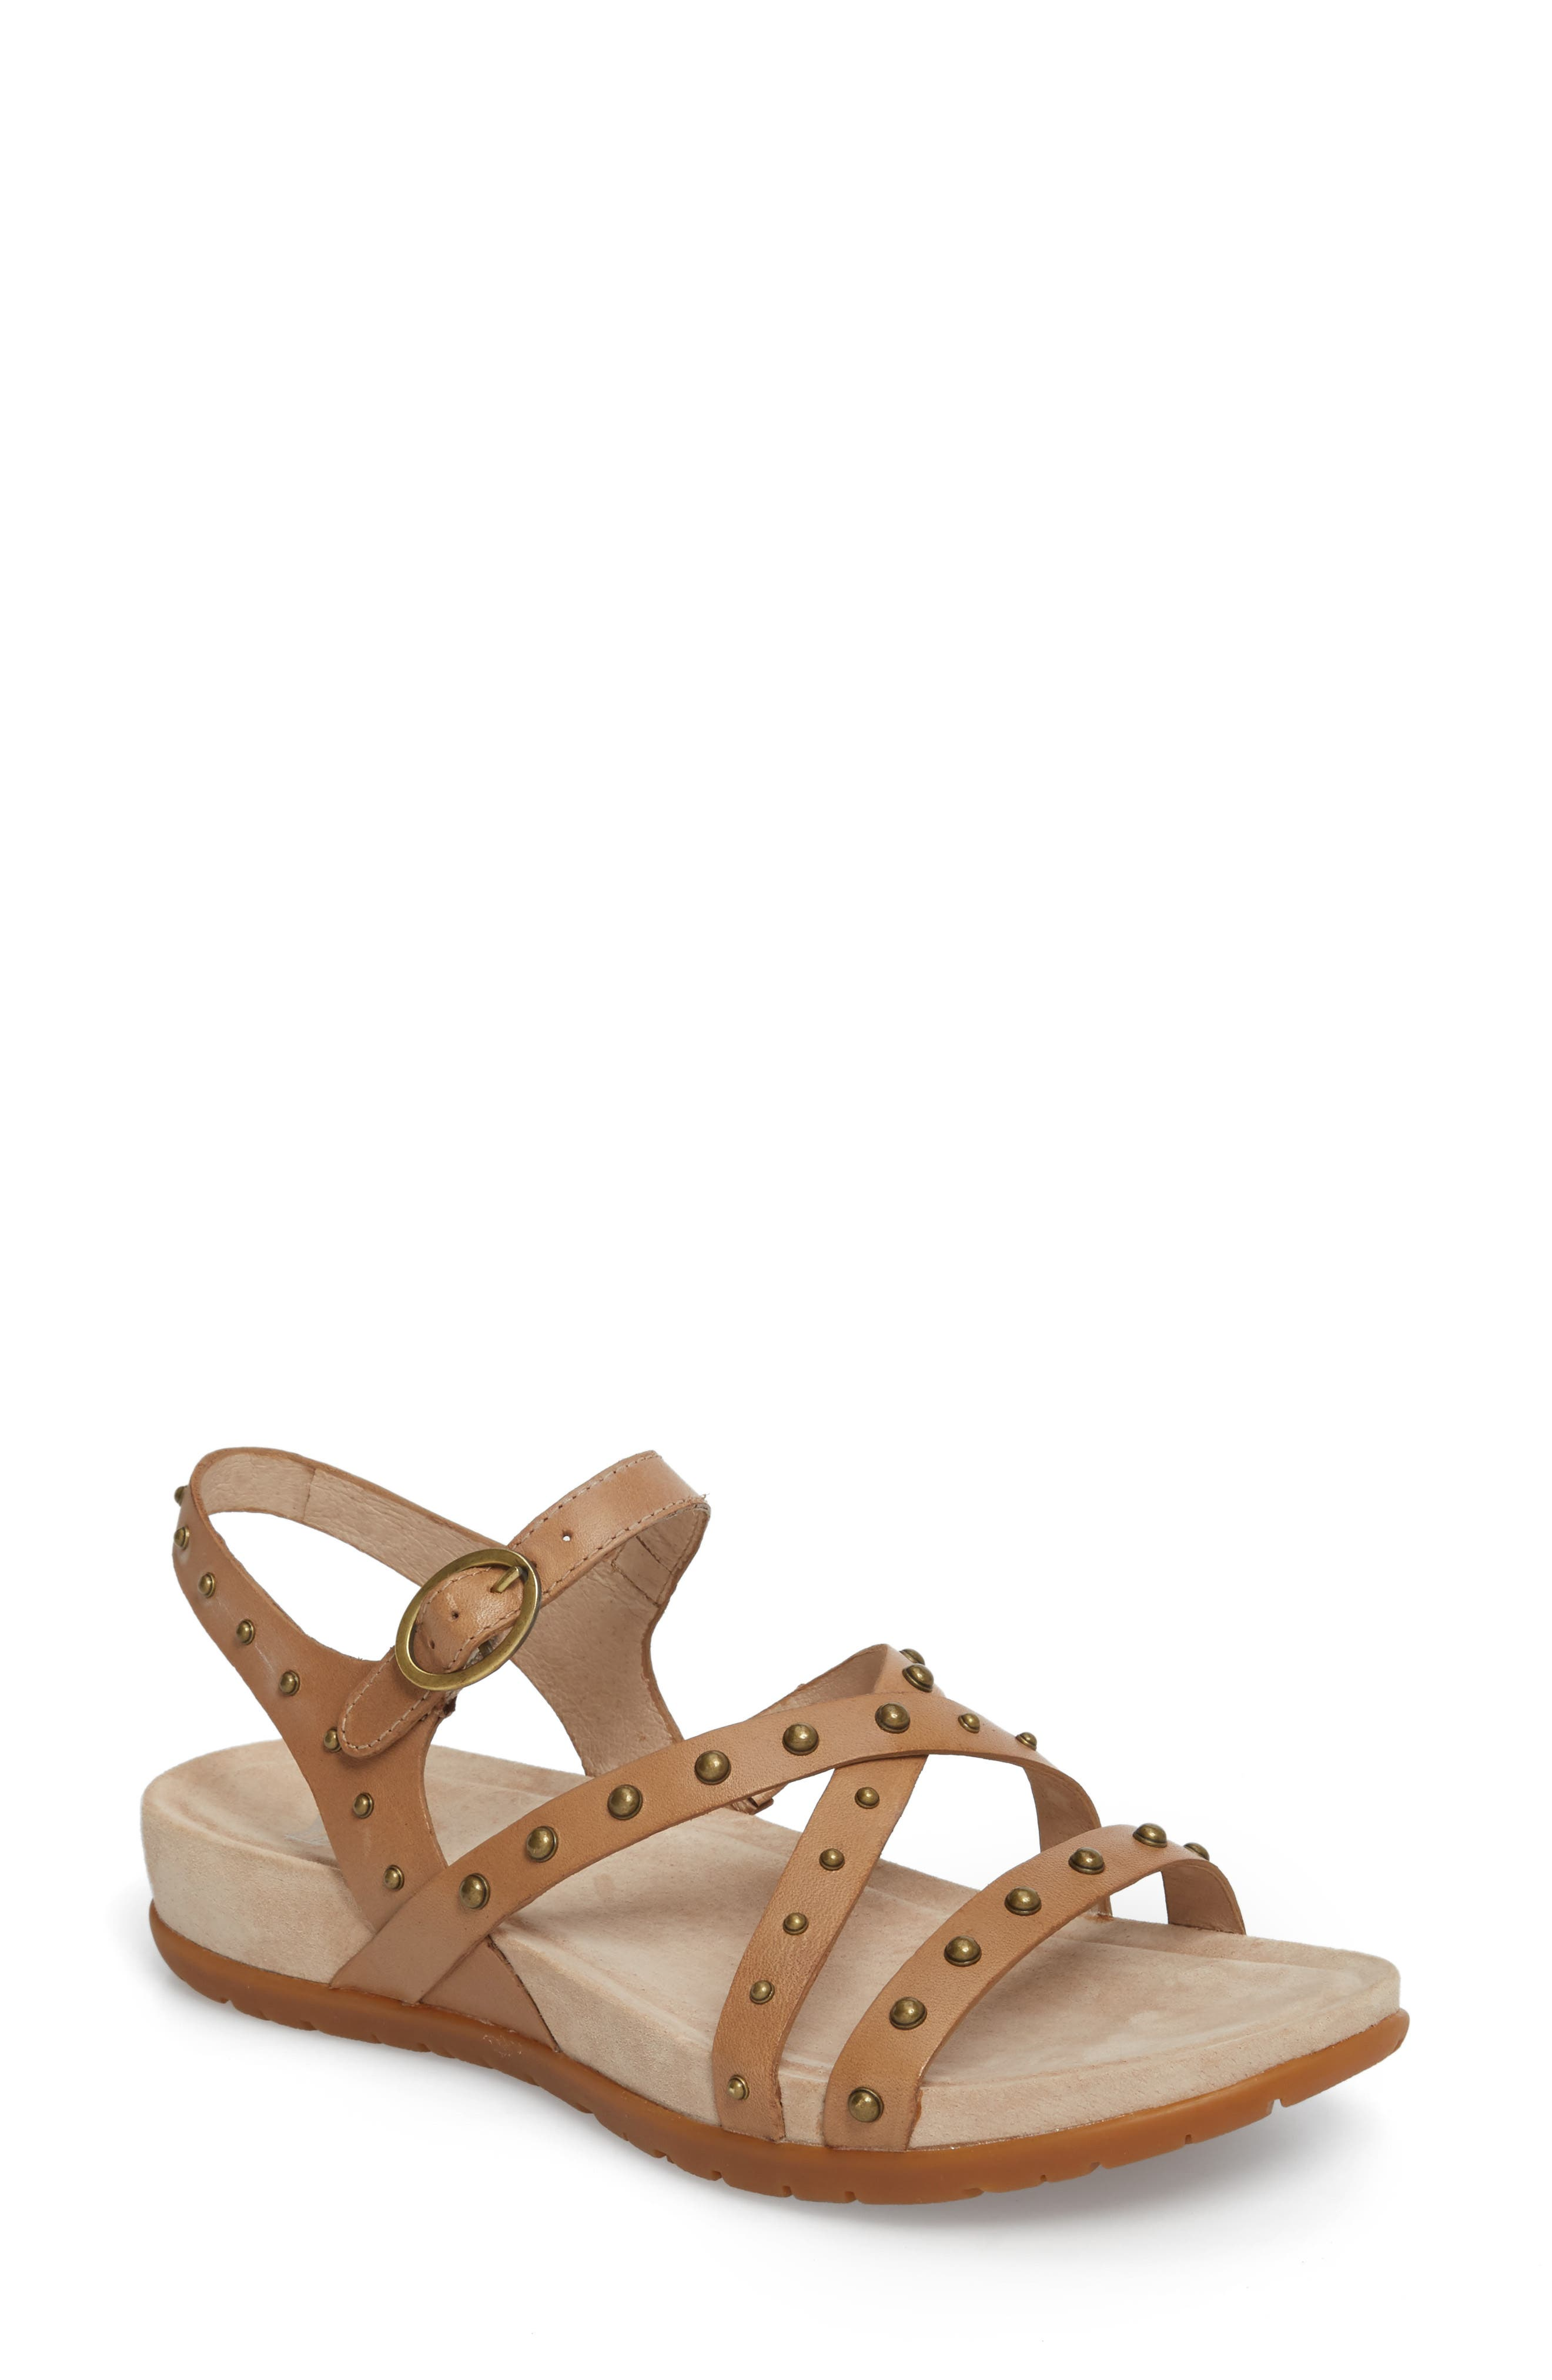 Brigitte Studded Strappy Sandal,                             Main thumbnail 1, color,                             Sand Leather